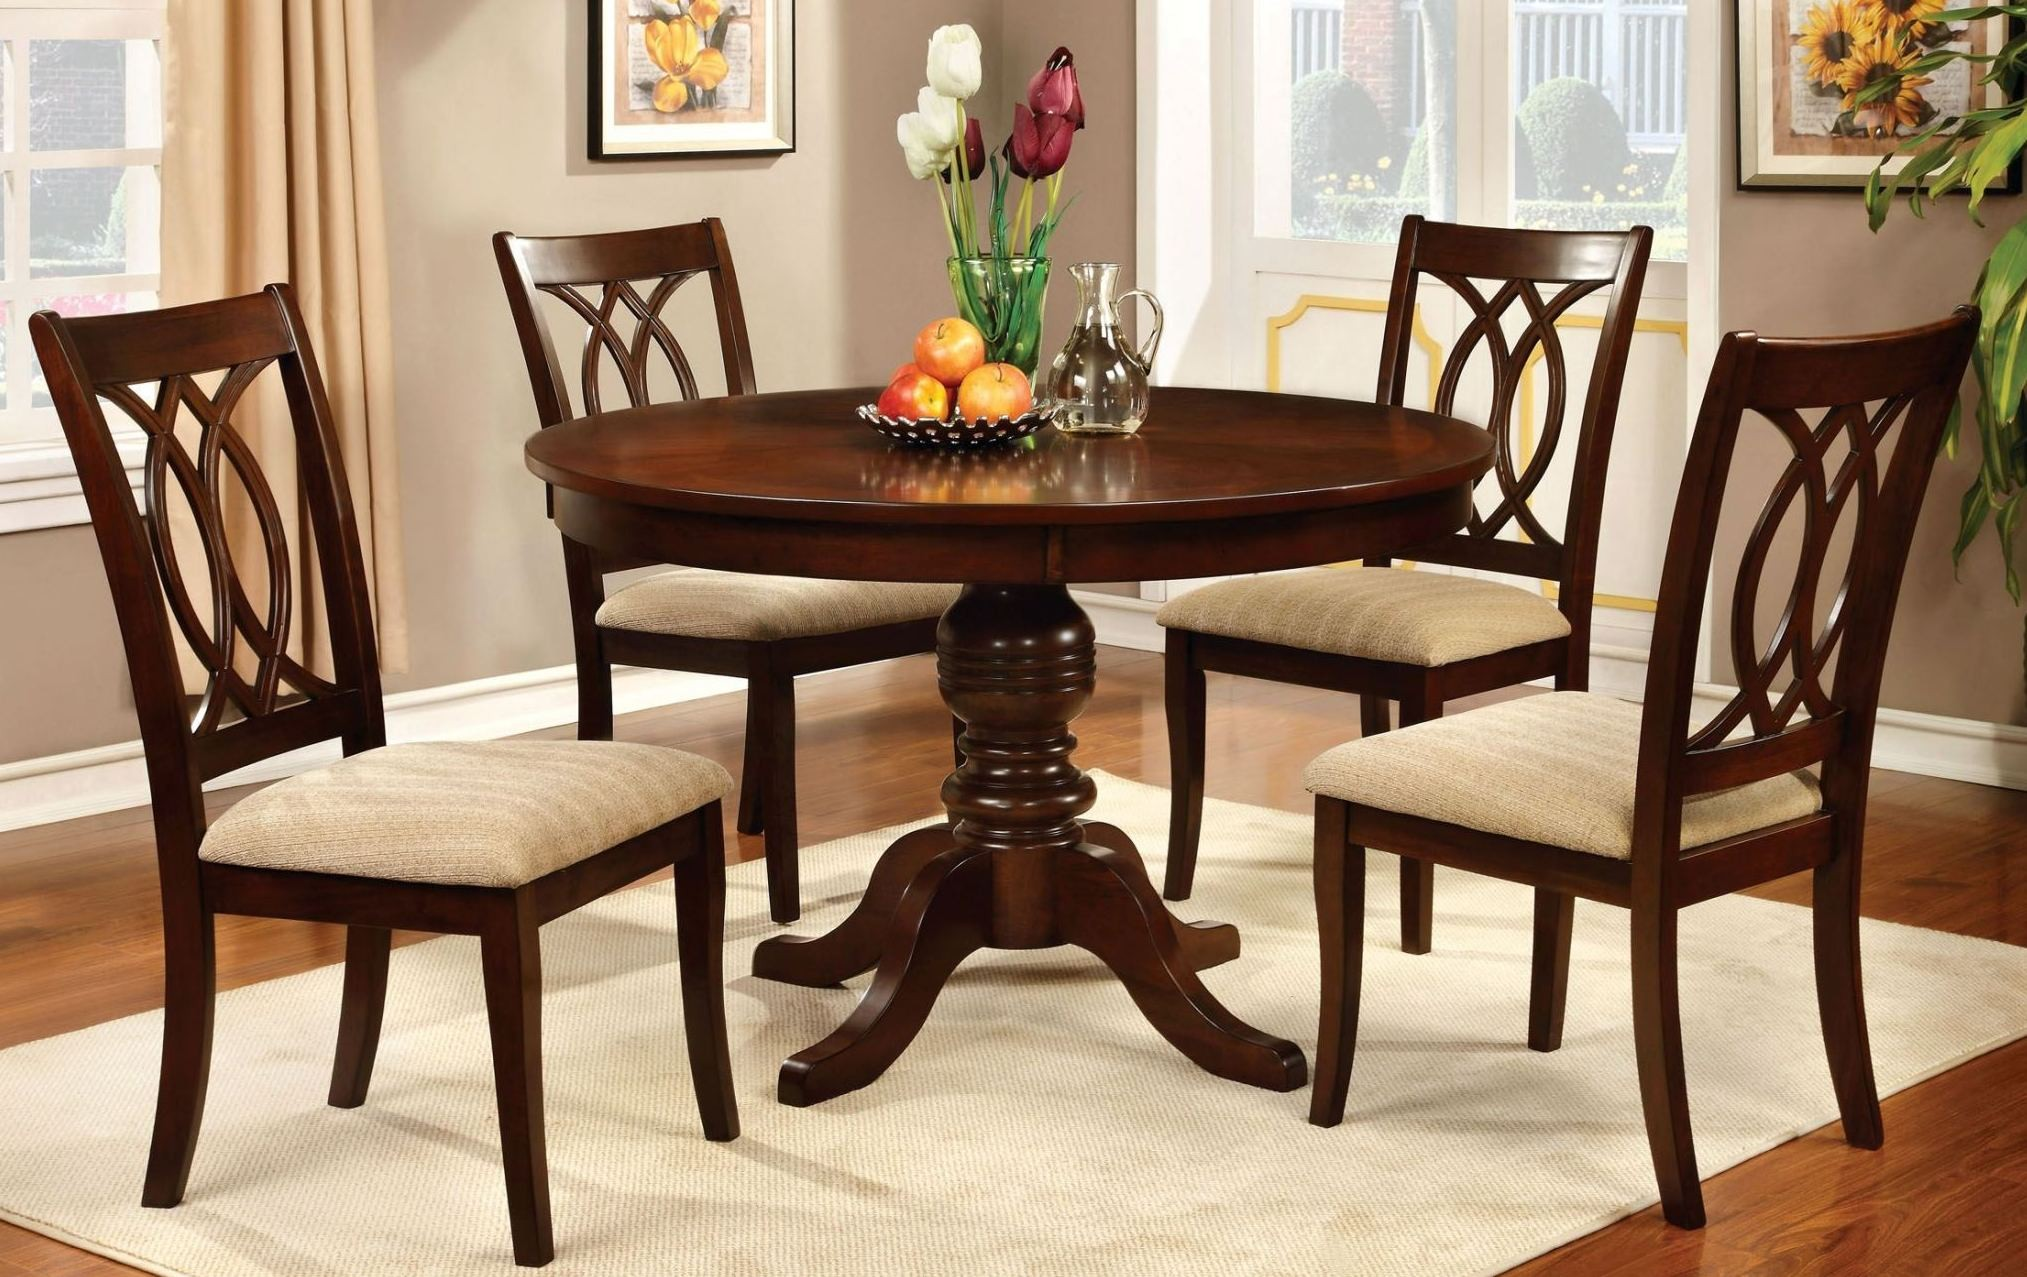 Carlisle Brown Cherry Round Pedestal Dining Room Set from